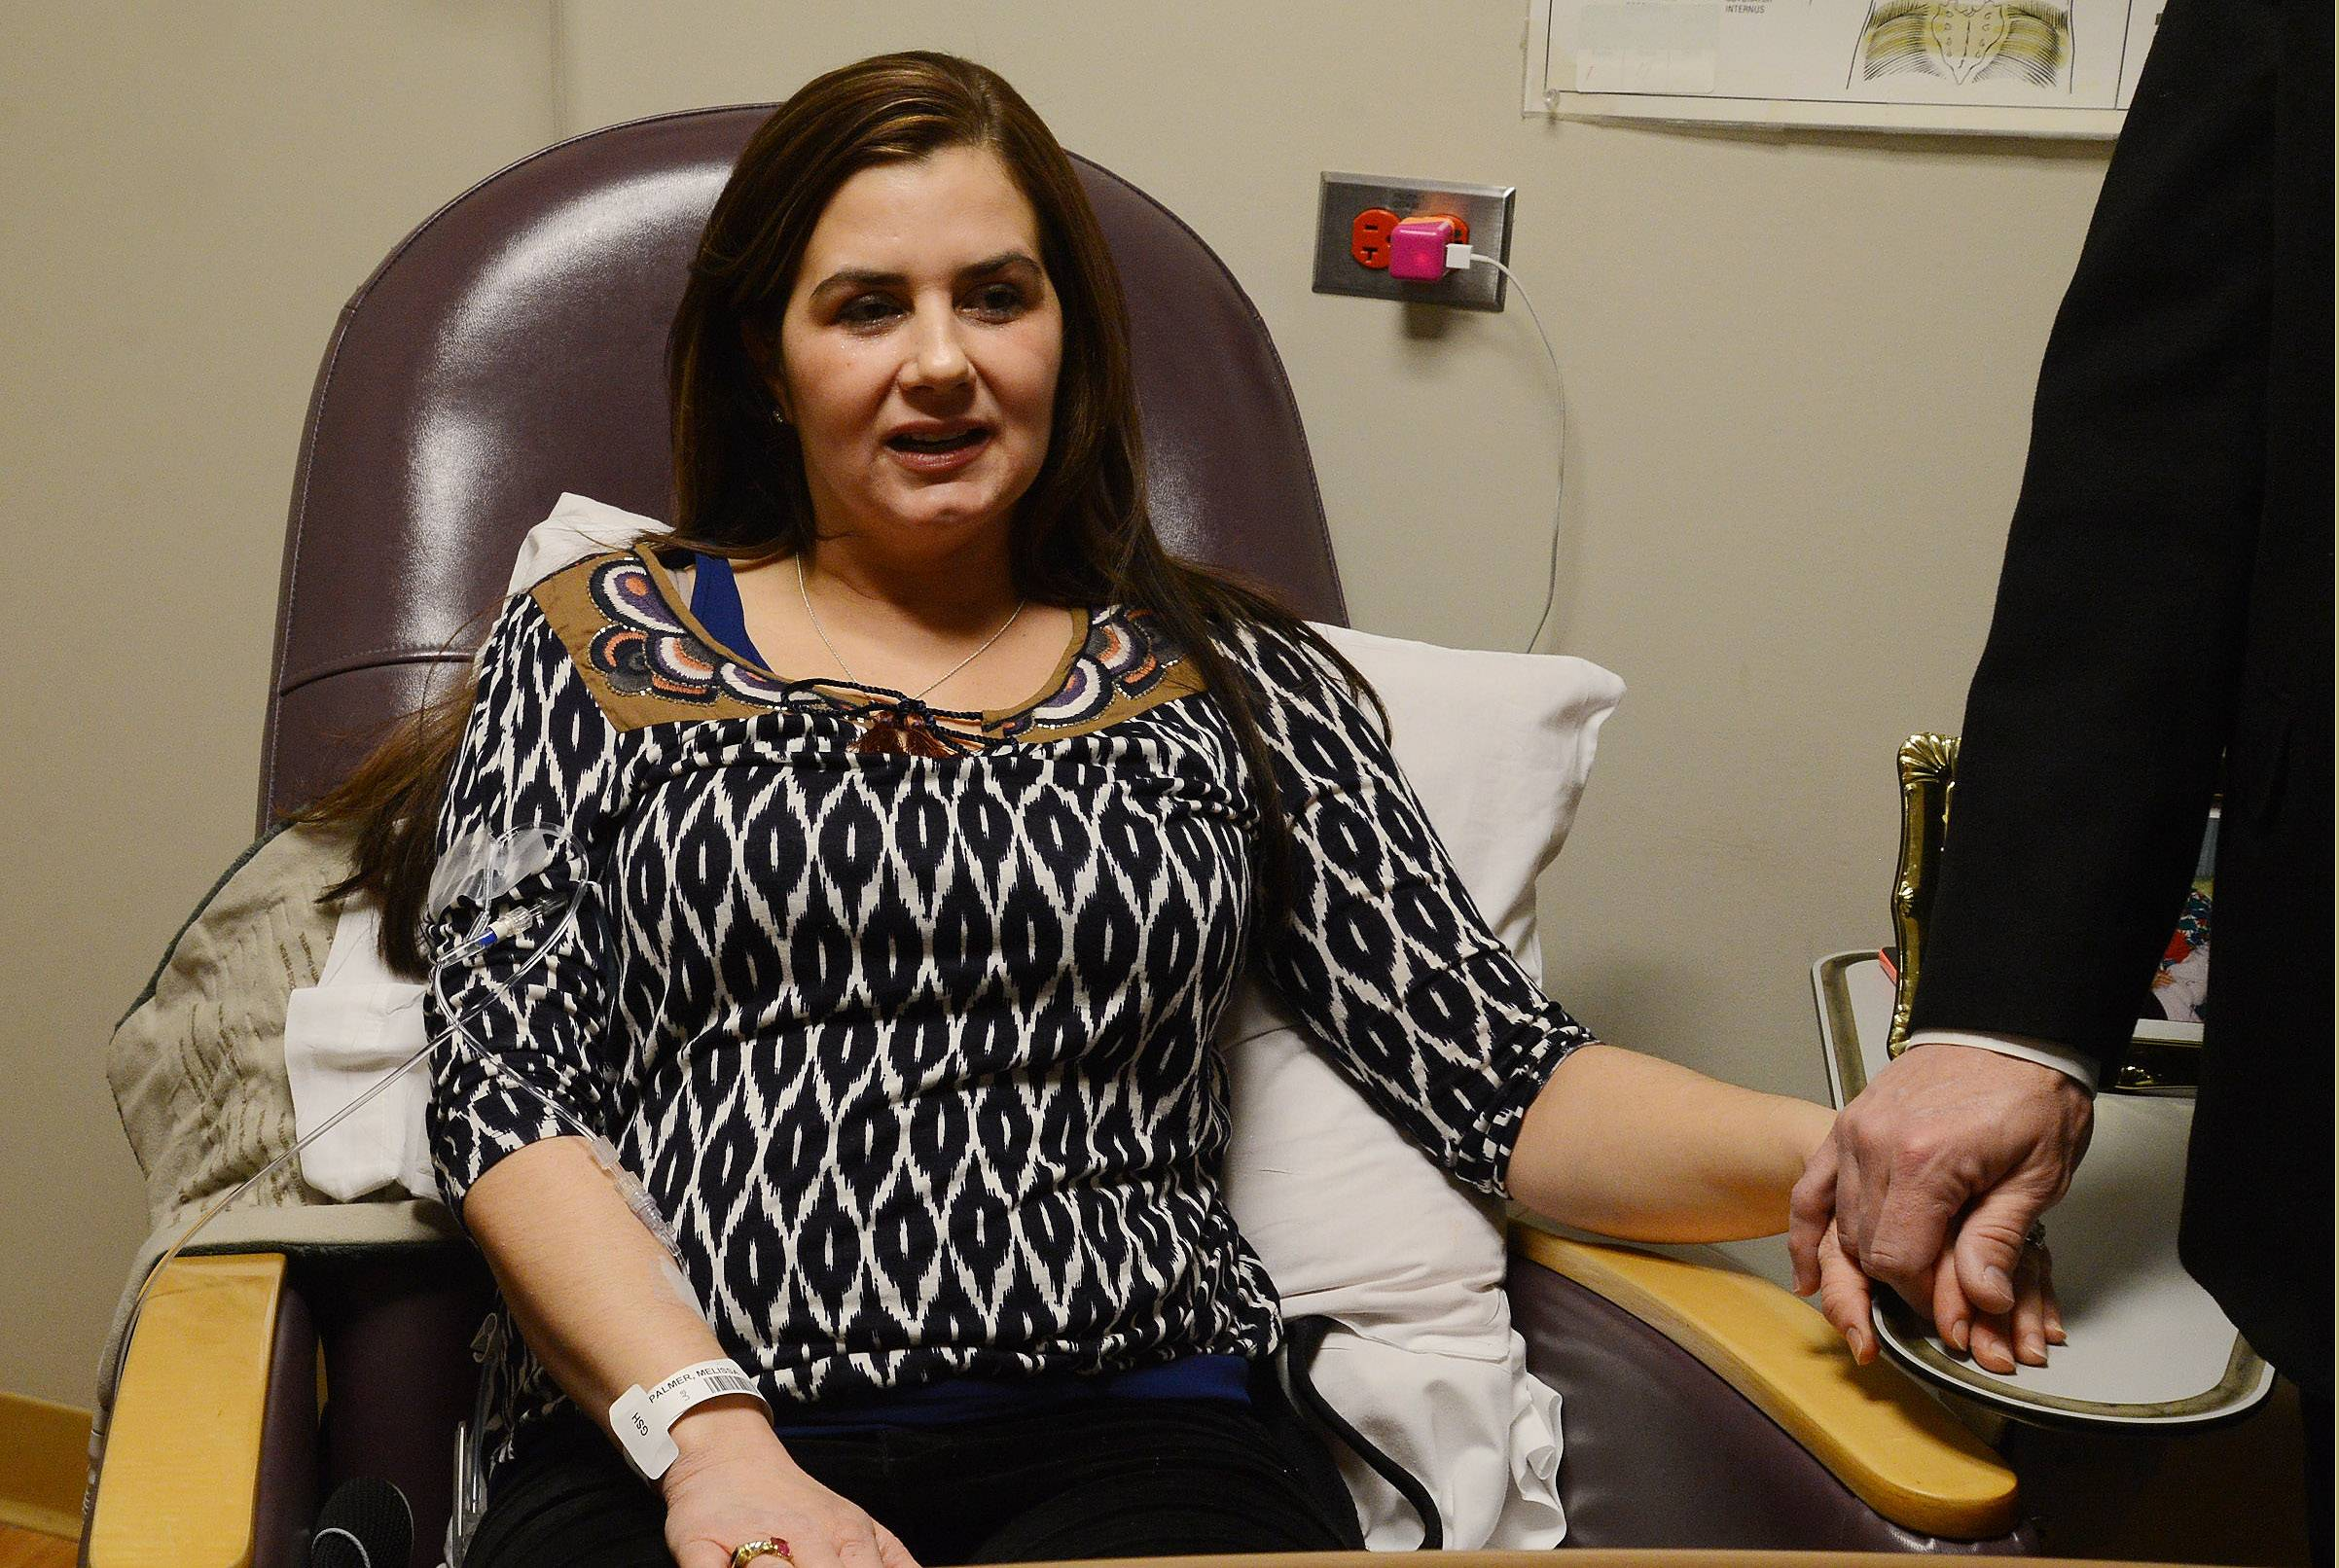 Melissa Palmer battles the rare Pompe disease with an experimental infusion treatment. Thanks to the effort of her longtime family physician, Dr. Richard McDonough, she's been able to receive the treatment closer to home at Advocate Good Shepherd Hospital in Lake Barrington.